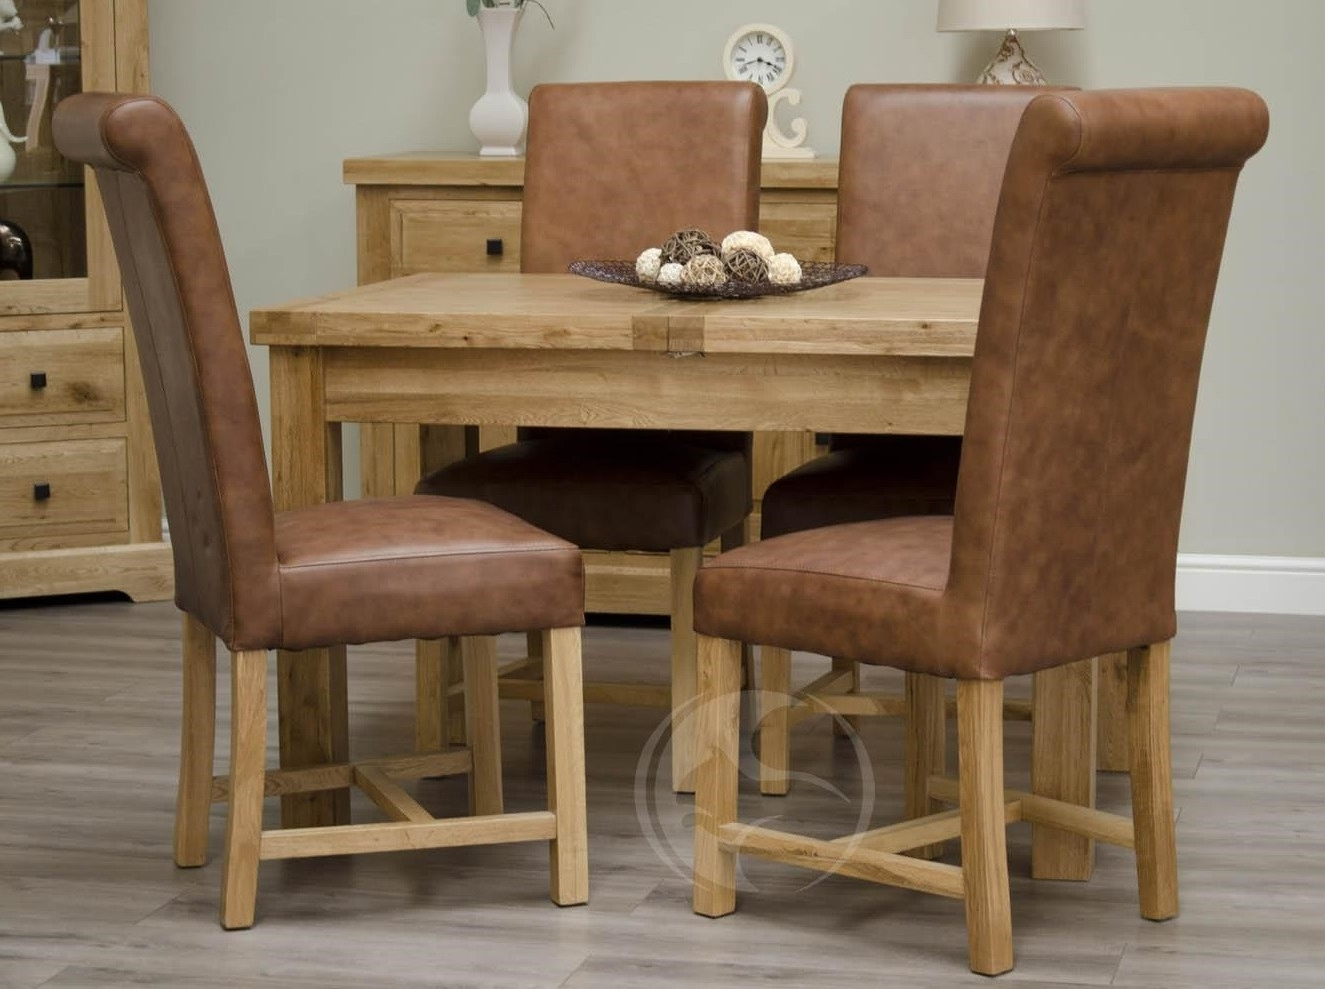 Oak Extending Dining Tables Sets With Regard To Favorite Coniston Rustic Solid Oak Small Extending Dining Table, Extended (View 17 of 25)